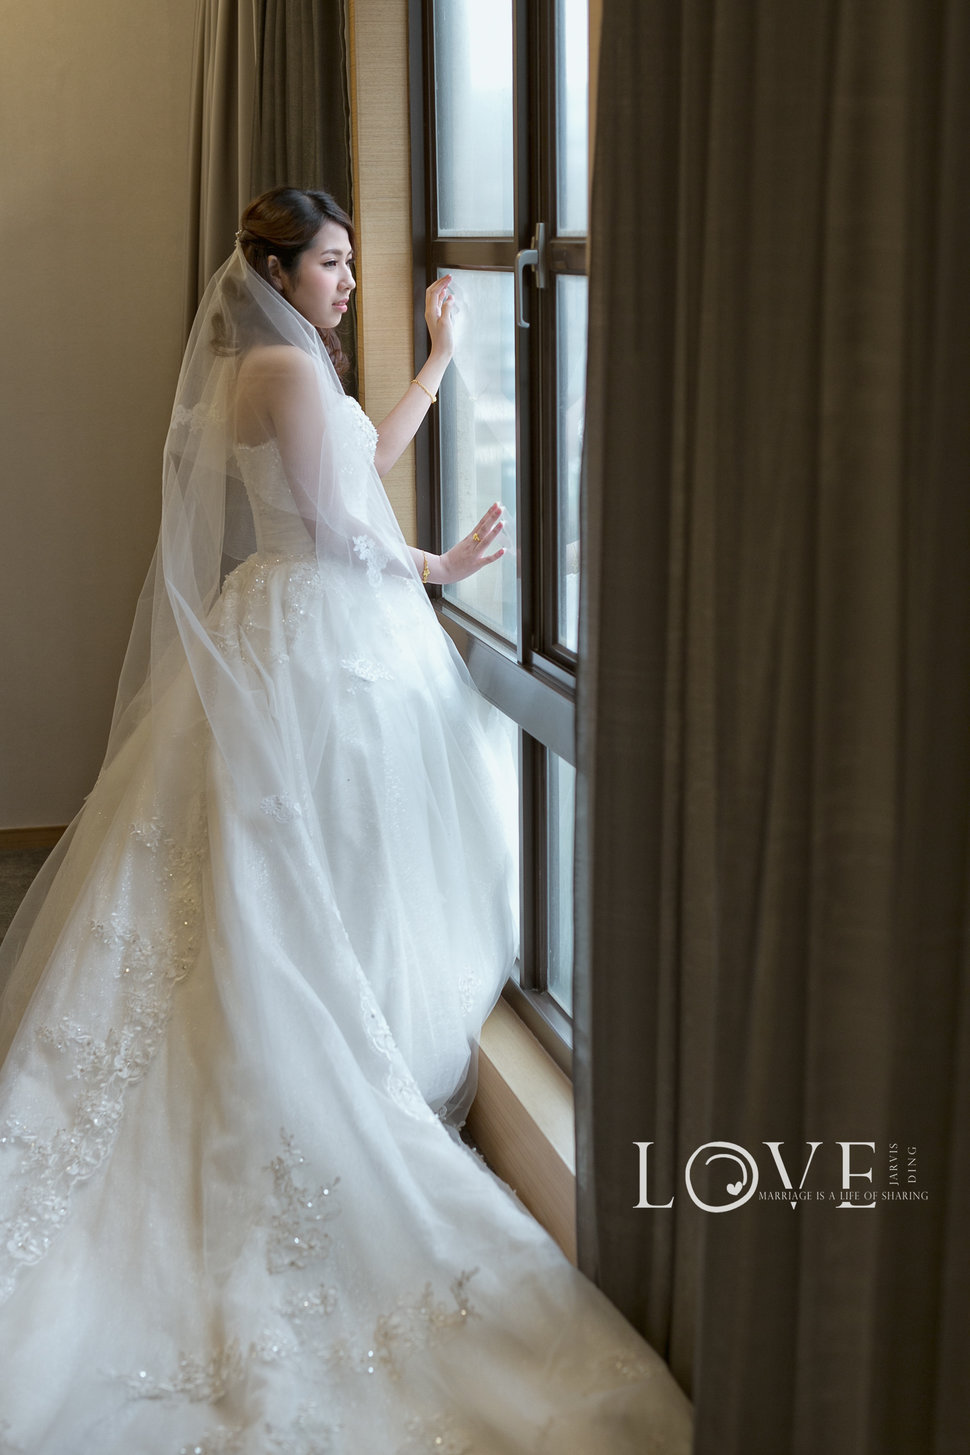 2D7A6705 - Jarvis Ding - 結婚吧